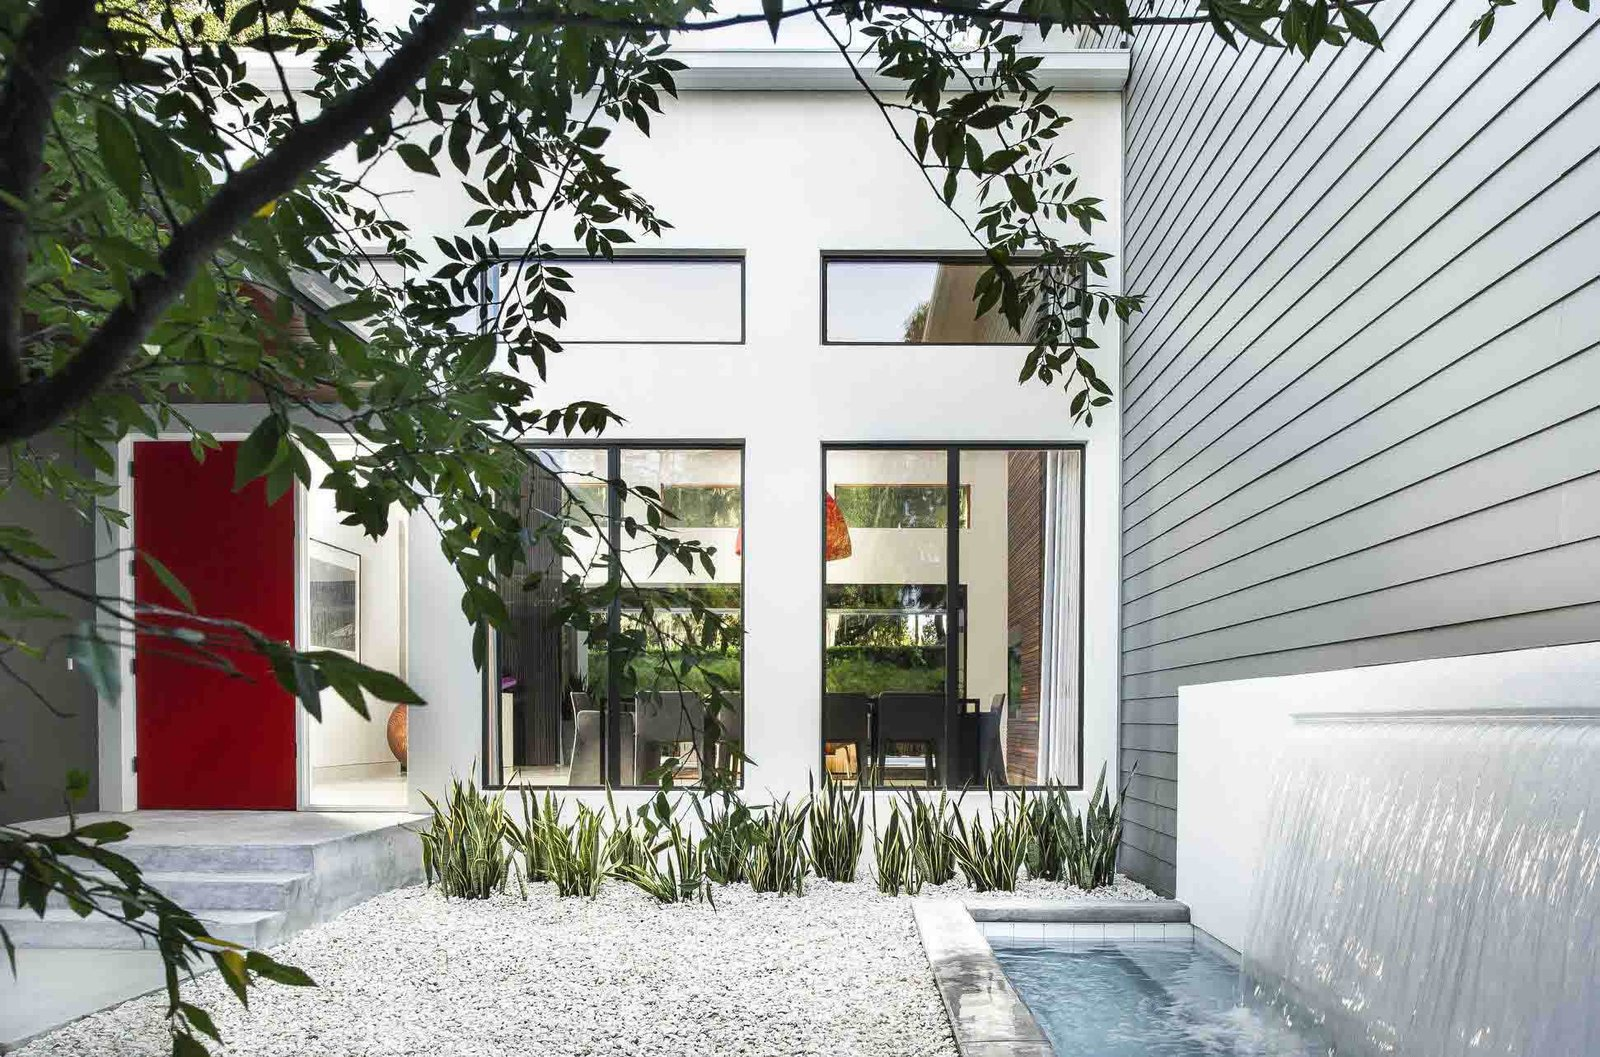 Outdoor, Small Pools, Tubs, Shower, Concrete Pools, Tubs, Shower, and Front Yard The red door was De Azevedo's idea, says Phil Kean, president of the Phil Kean Design Group. It adds a spash of color to the front courtyard, which is simply landscaped with gravel and low-maintenance plants. A water feature was installed next to the James Hardie fiber-cement siding.  Photo 2 of 7 in A Modern Home For a Design-Savvy Family in Florida